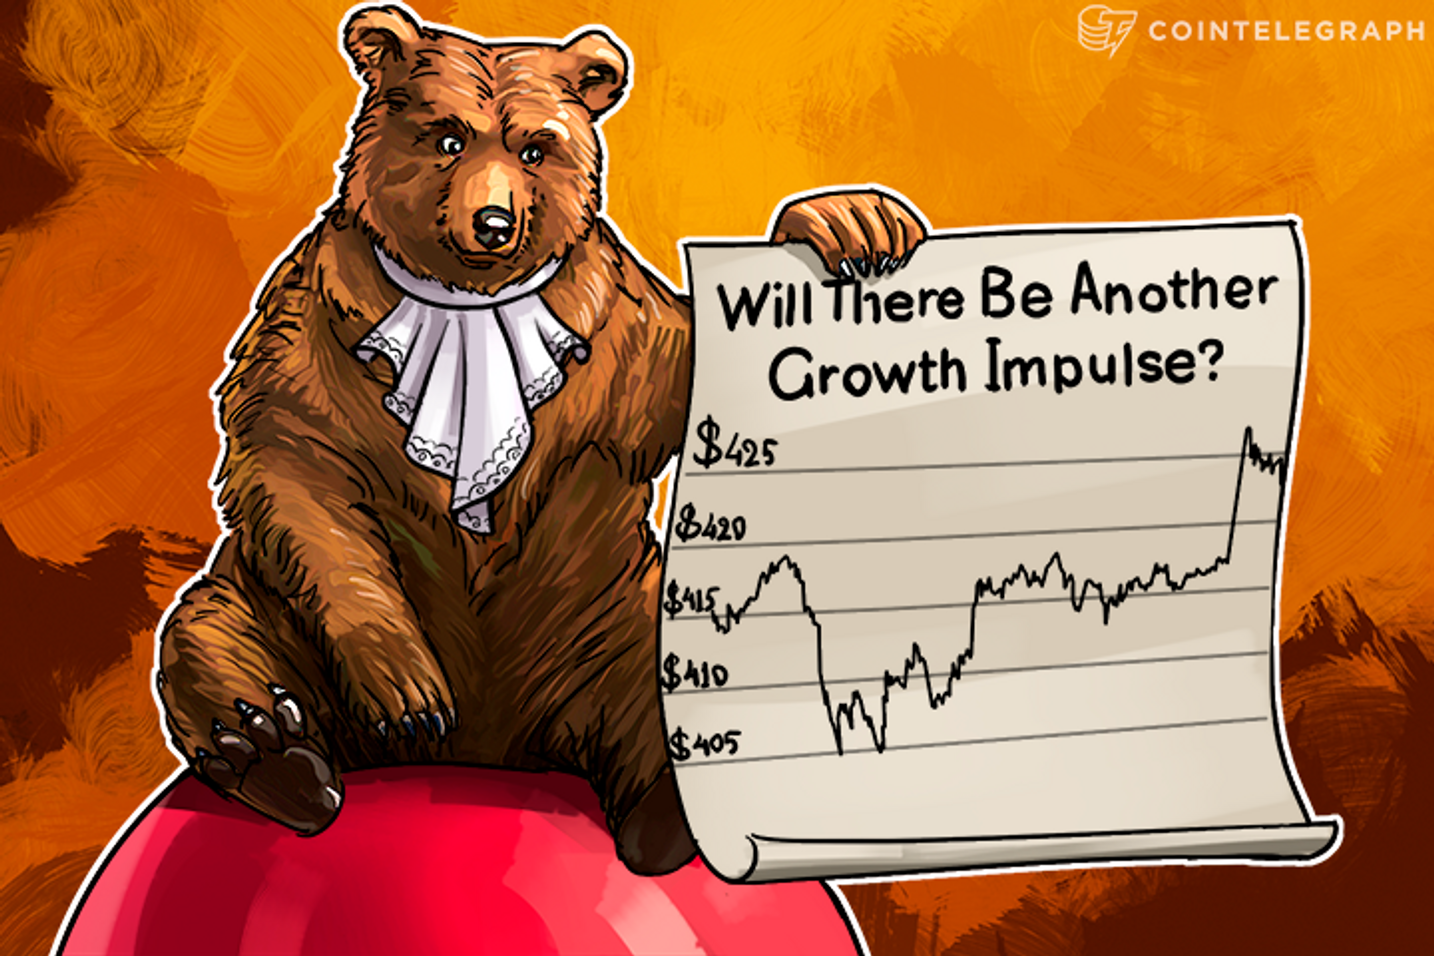 Bitcoin Price Analysis: 3/28/2016